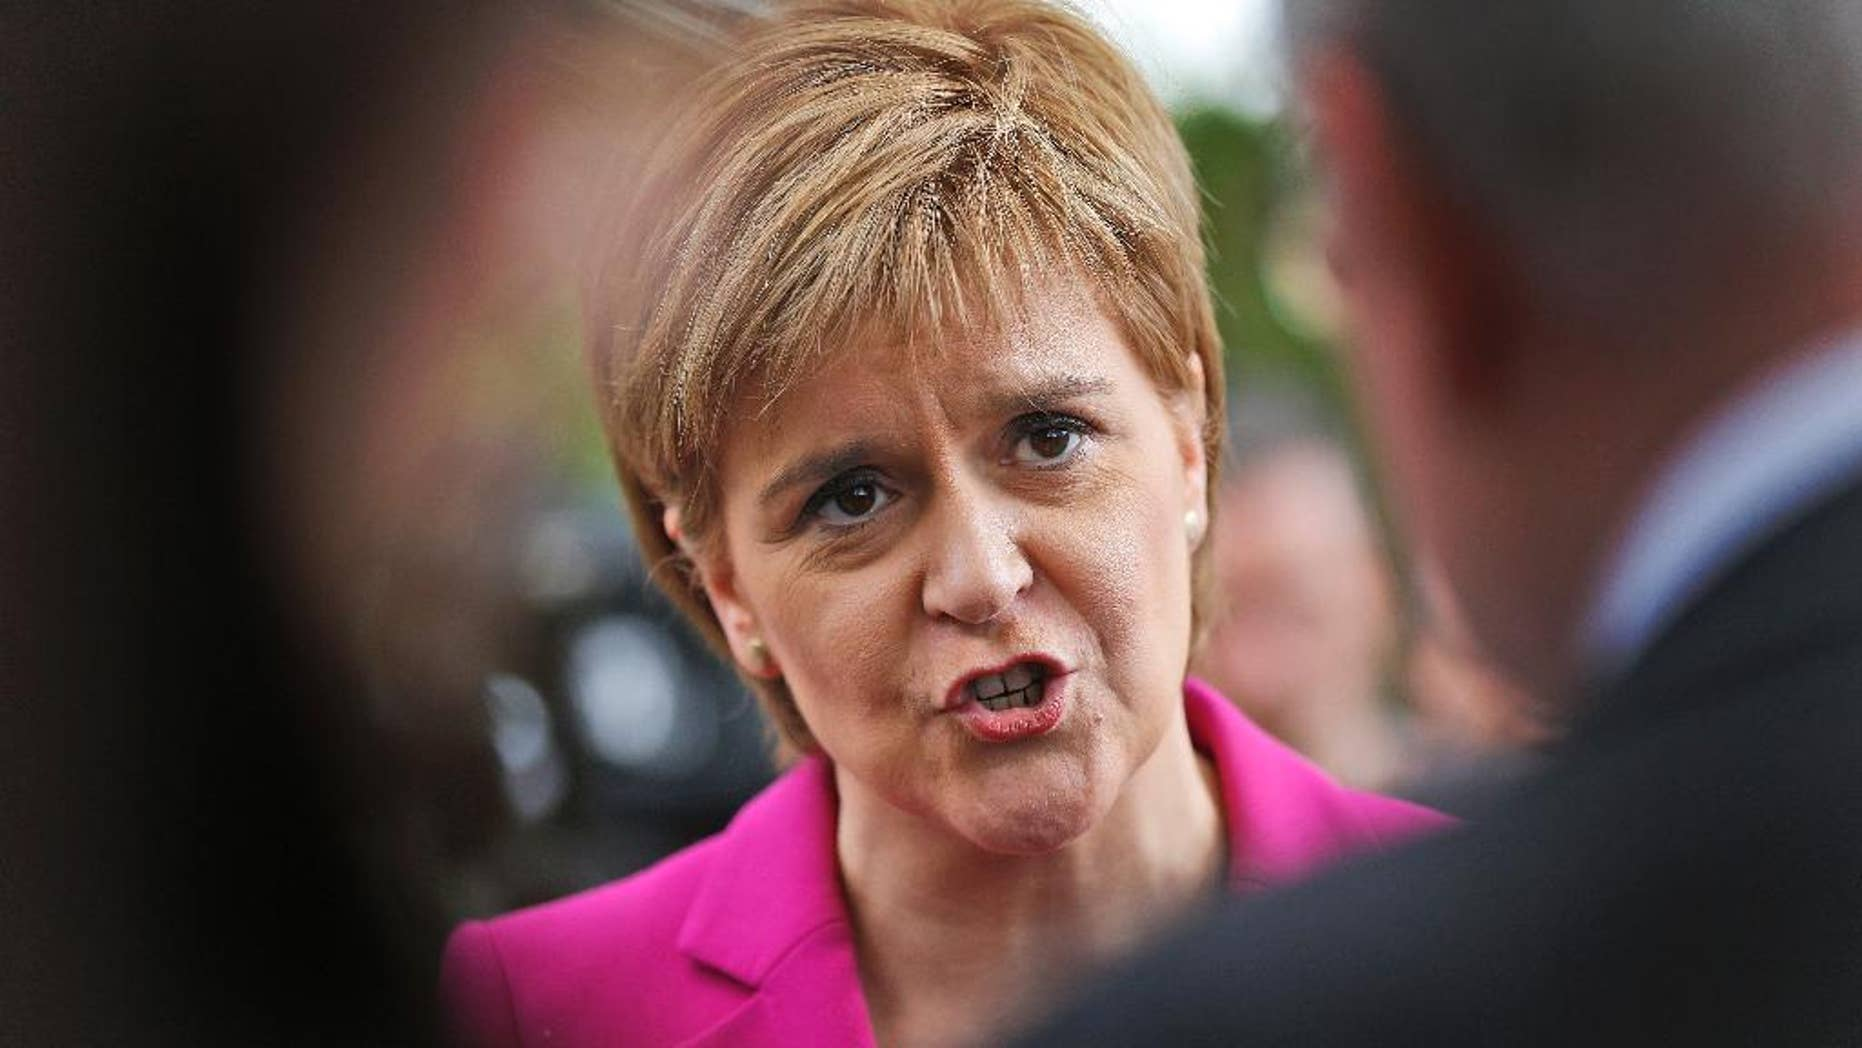 """FILE - In this Monday, May 23, 2016 file photo, Scottish First Minster Nicola Sturgeon talks to journalists after meeting with Plaid Cymru Leader Leanne Wood and Green MP Caroline Lucas, in London. Nicola Sturgeon says in comments that were broadcast on Thursday March 9, 2017, that if Scotland decides on a new independence referendum, it would be """"common sense"""" to hold it in the second half of 2018. (AP Photo/Frank Augstein, File)"""